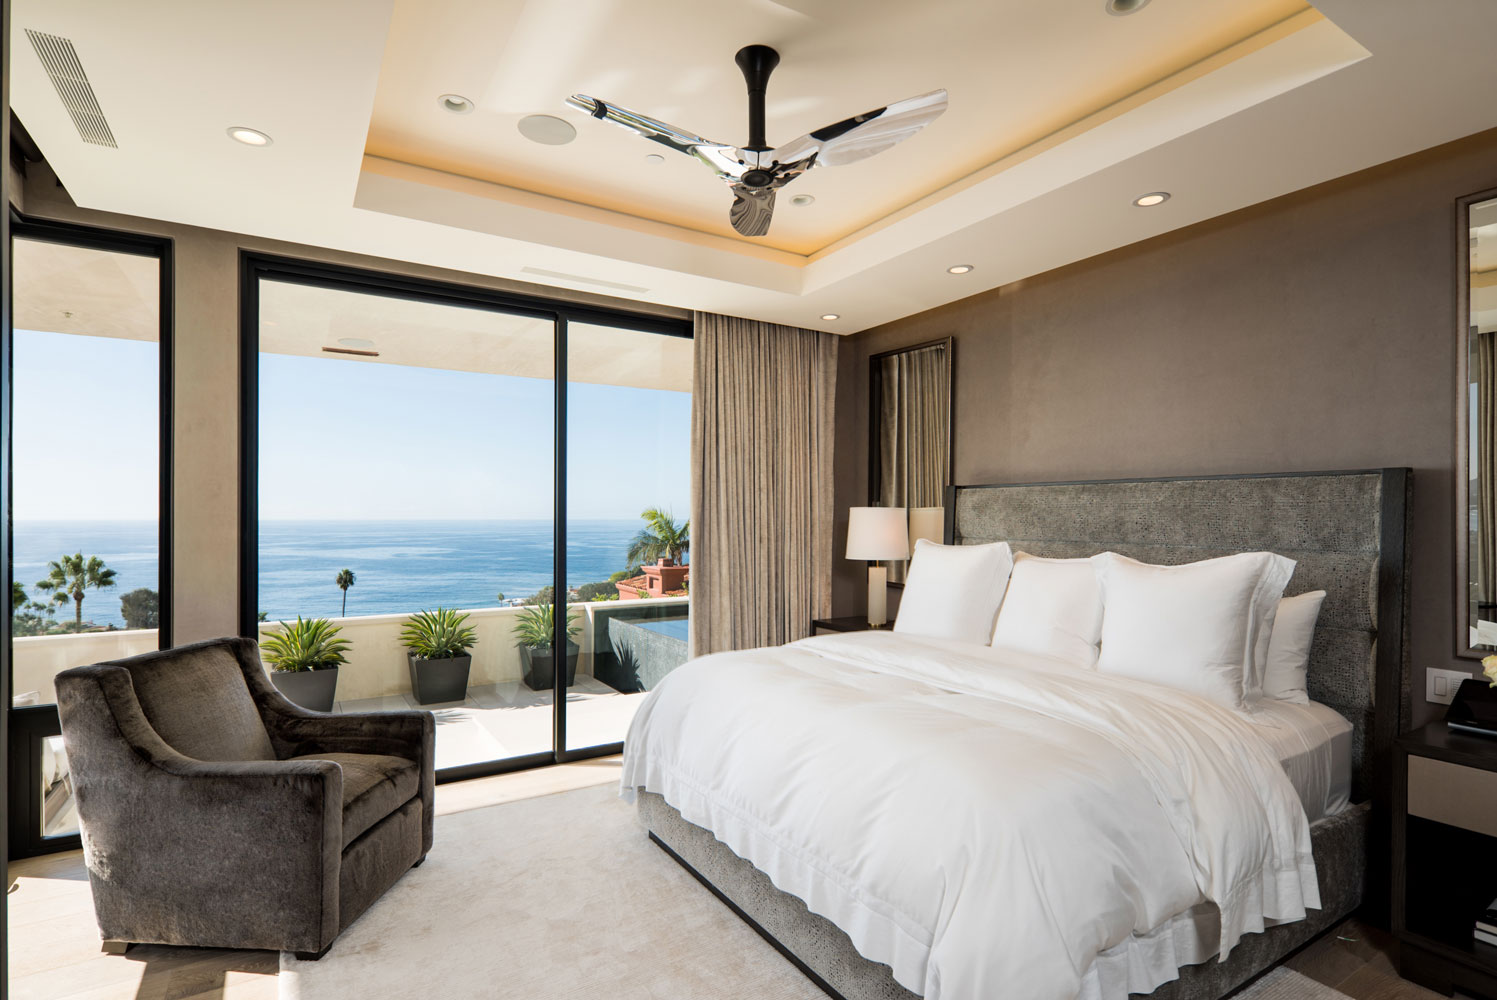 Contemporary-Master-Bedroom-Steel-Sliders-Chrome-Ceiling-Fan-Corbin-Reeves.jpg